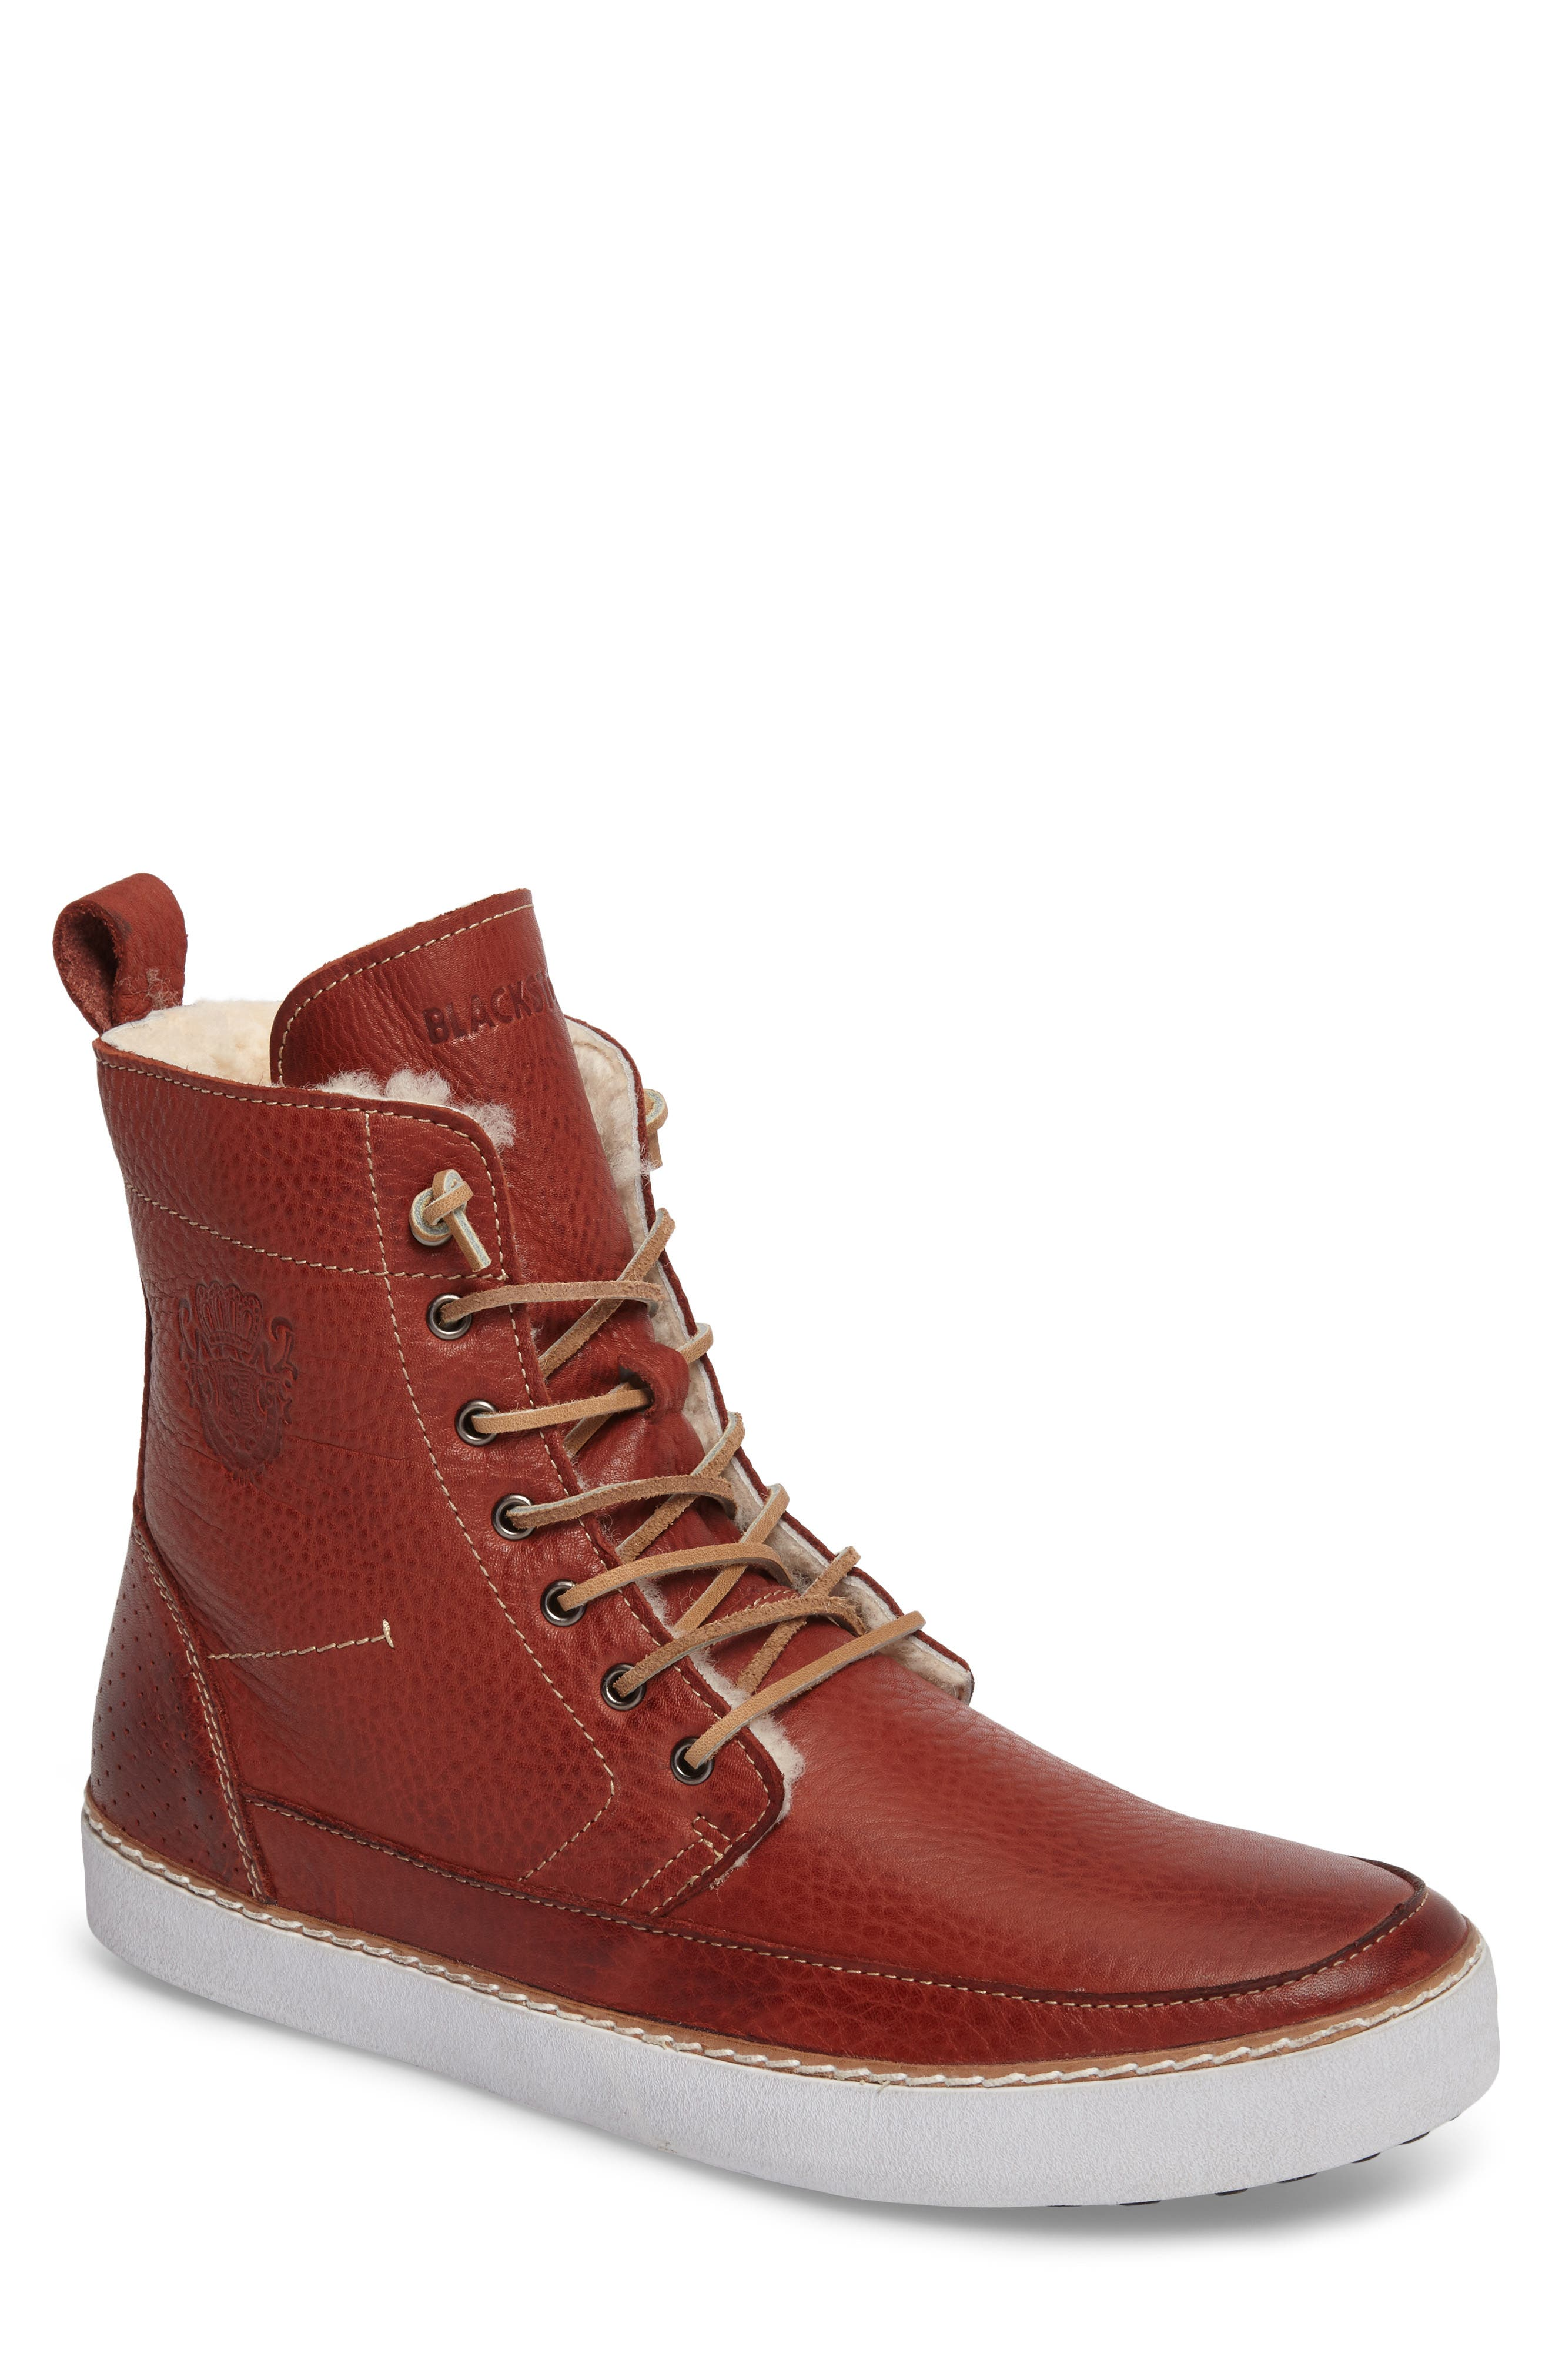 'AM 32' Shearling Lined Boot,                         Main,                         color, 200